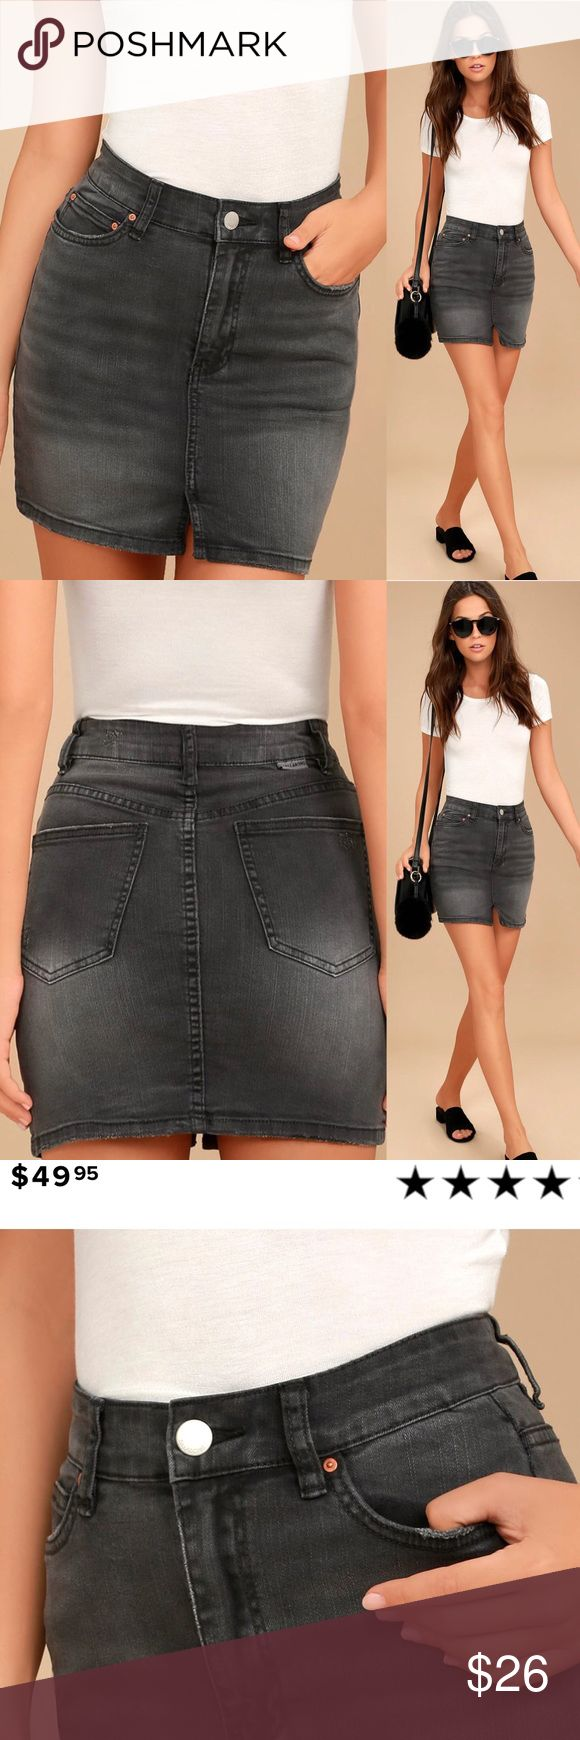 🆕 Billabong Washed Black Denim Mini Skirt Embrace the sunshine in the Billabong Black Washed Black Denim Mini Skirt! Stretch, washed denim falls from a belt loop-accented waistband into a five-pocket cut and a short, flirty hem with front slit. Branded top button and zip fly. Logo tag at back. Unlined. 98% Cotton, 2% Elastane. Machine Wash Cold. Billabong Skirts Mini